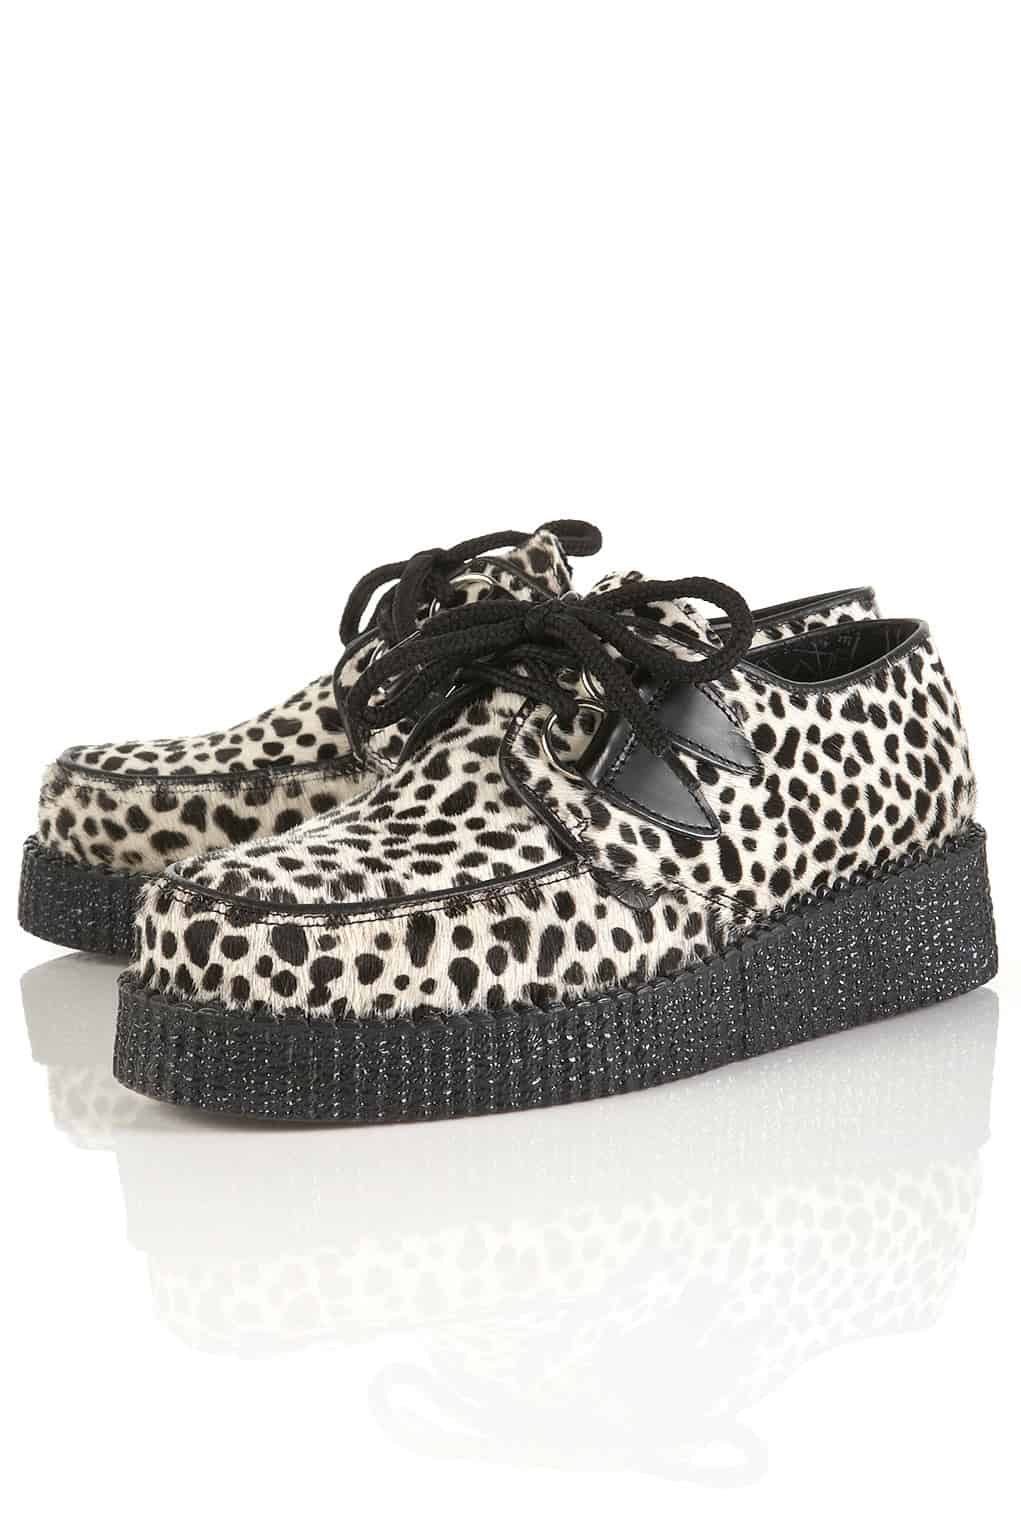 Dalmatian Print Creepers - by Underground